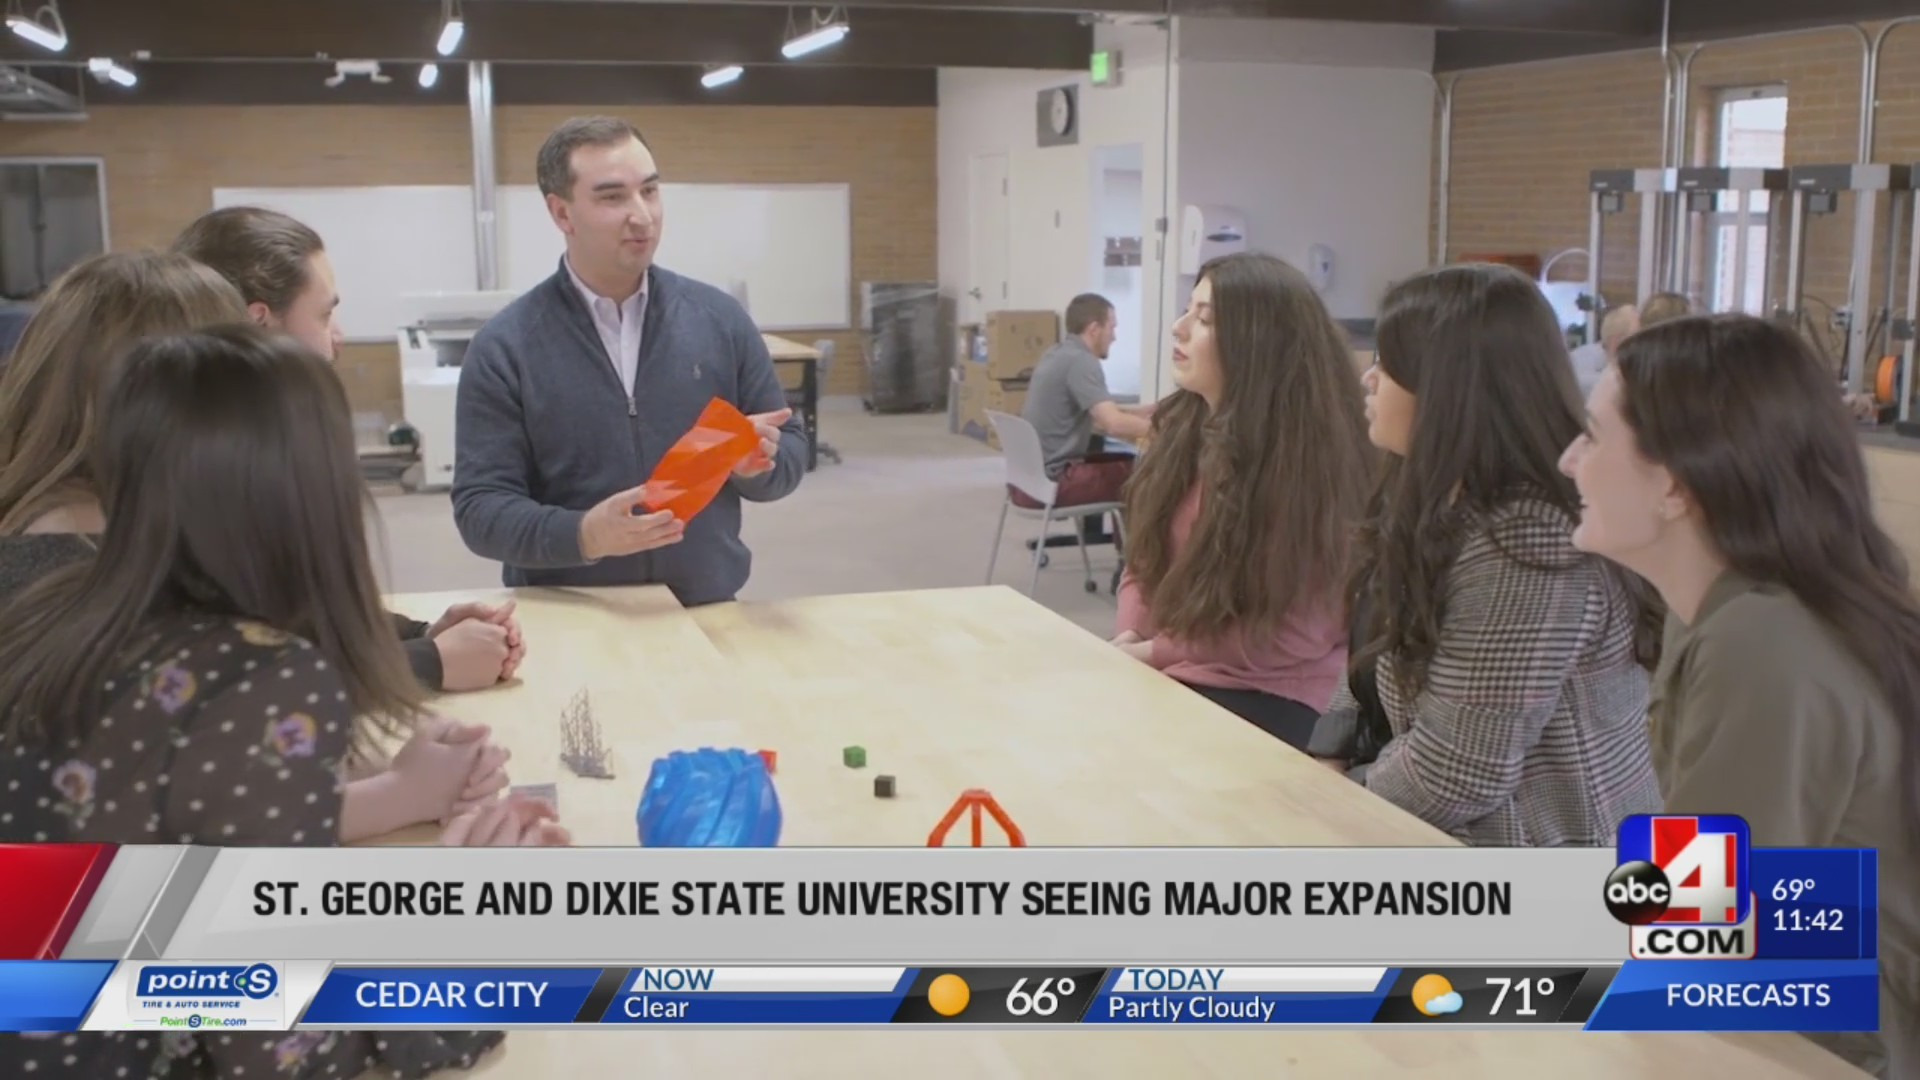 Dixie State University on the rise